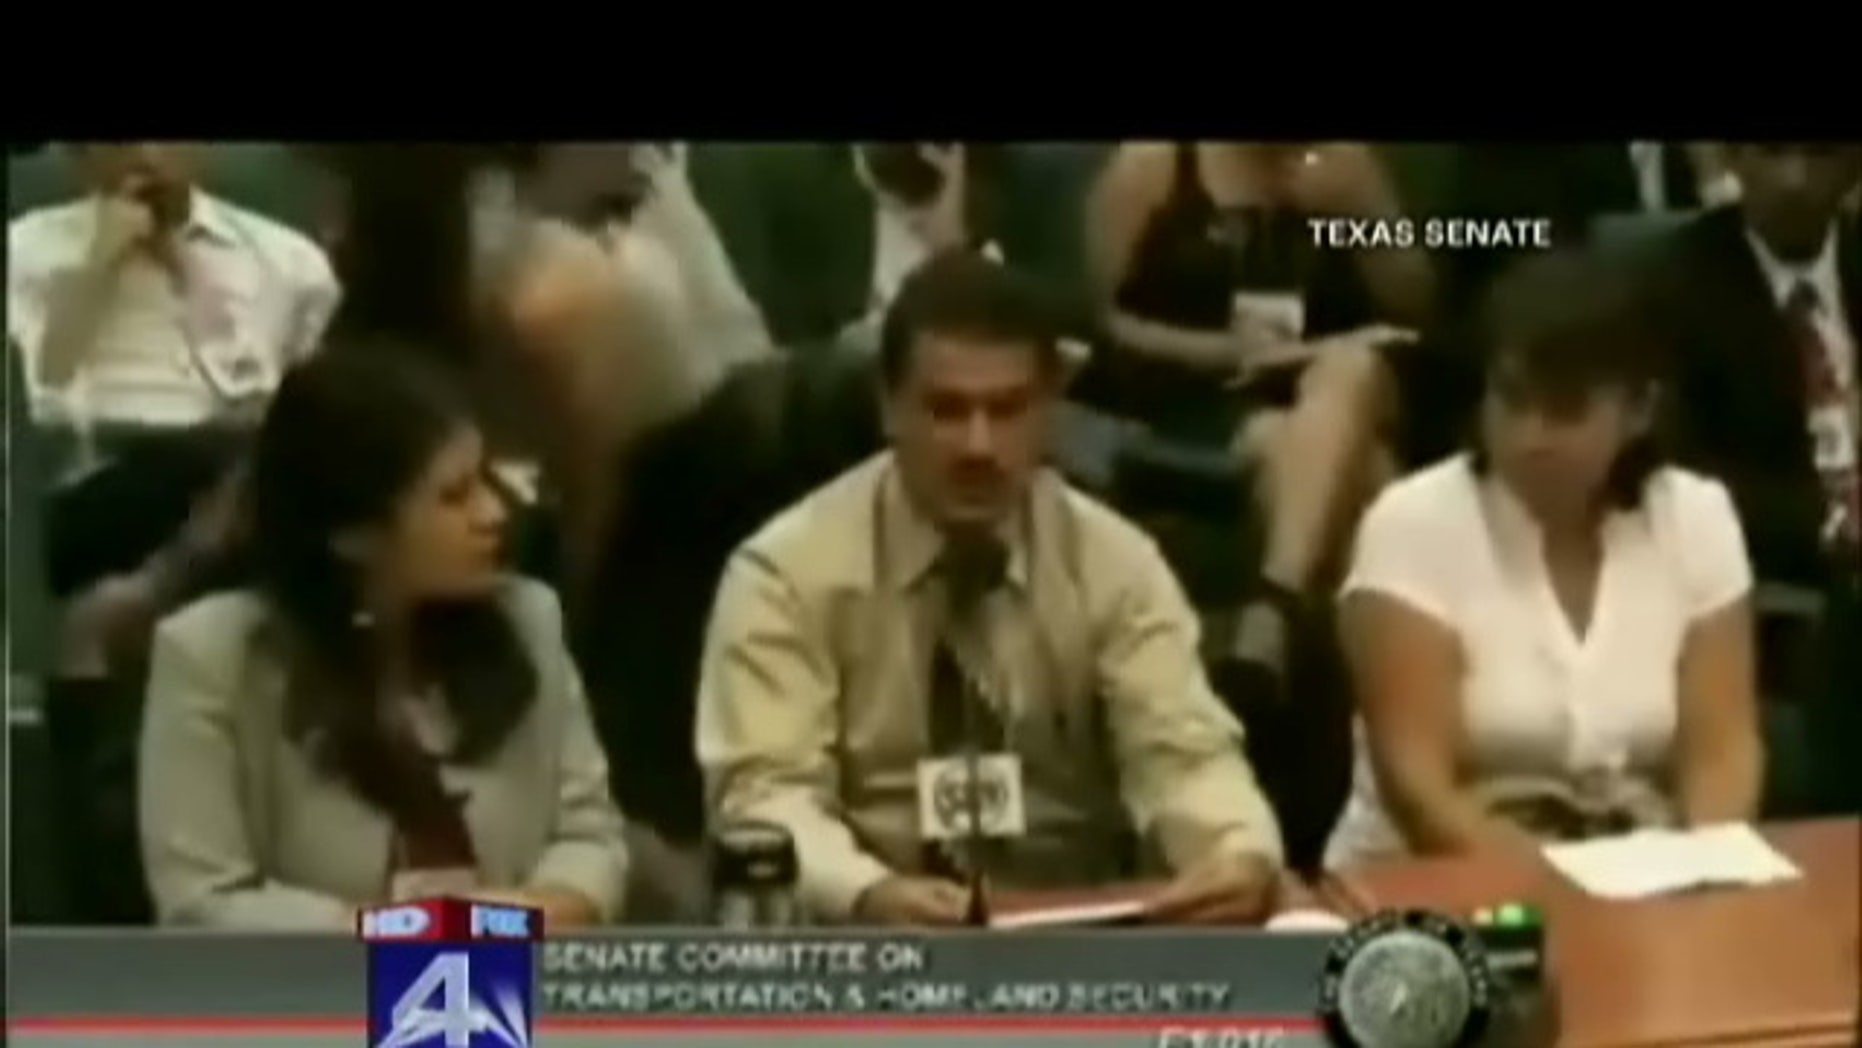 """A Texas state senator angrily criticized a man for giving his testimony in Spanish during a committee hearing in Austin on Monday, telling the man to """"speak English."""""""